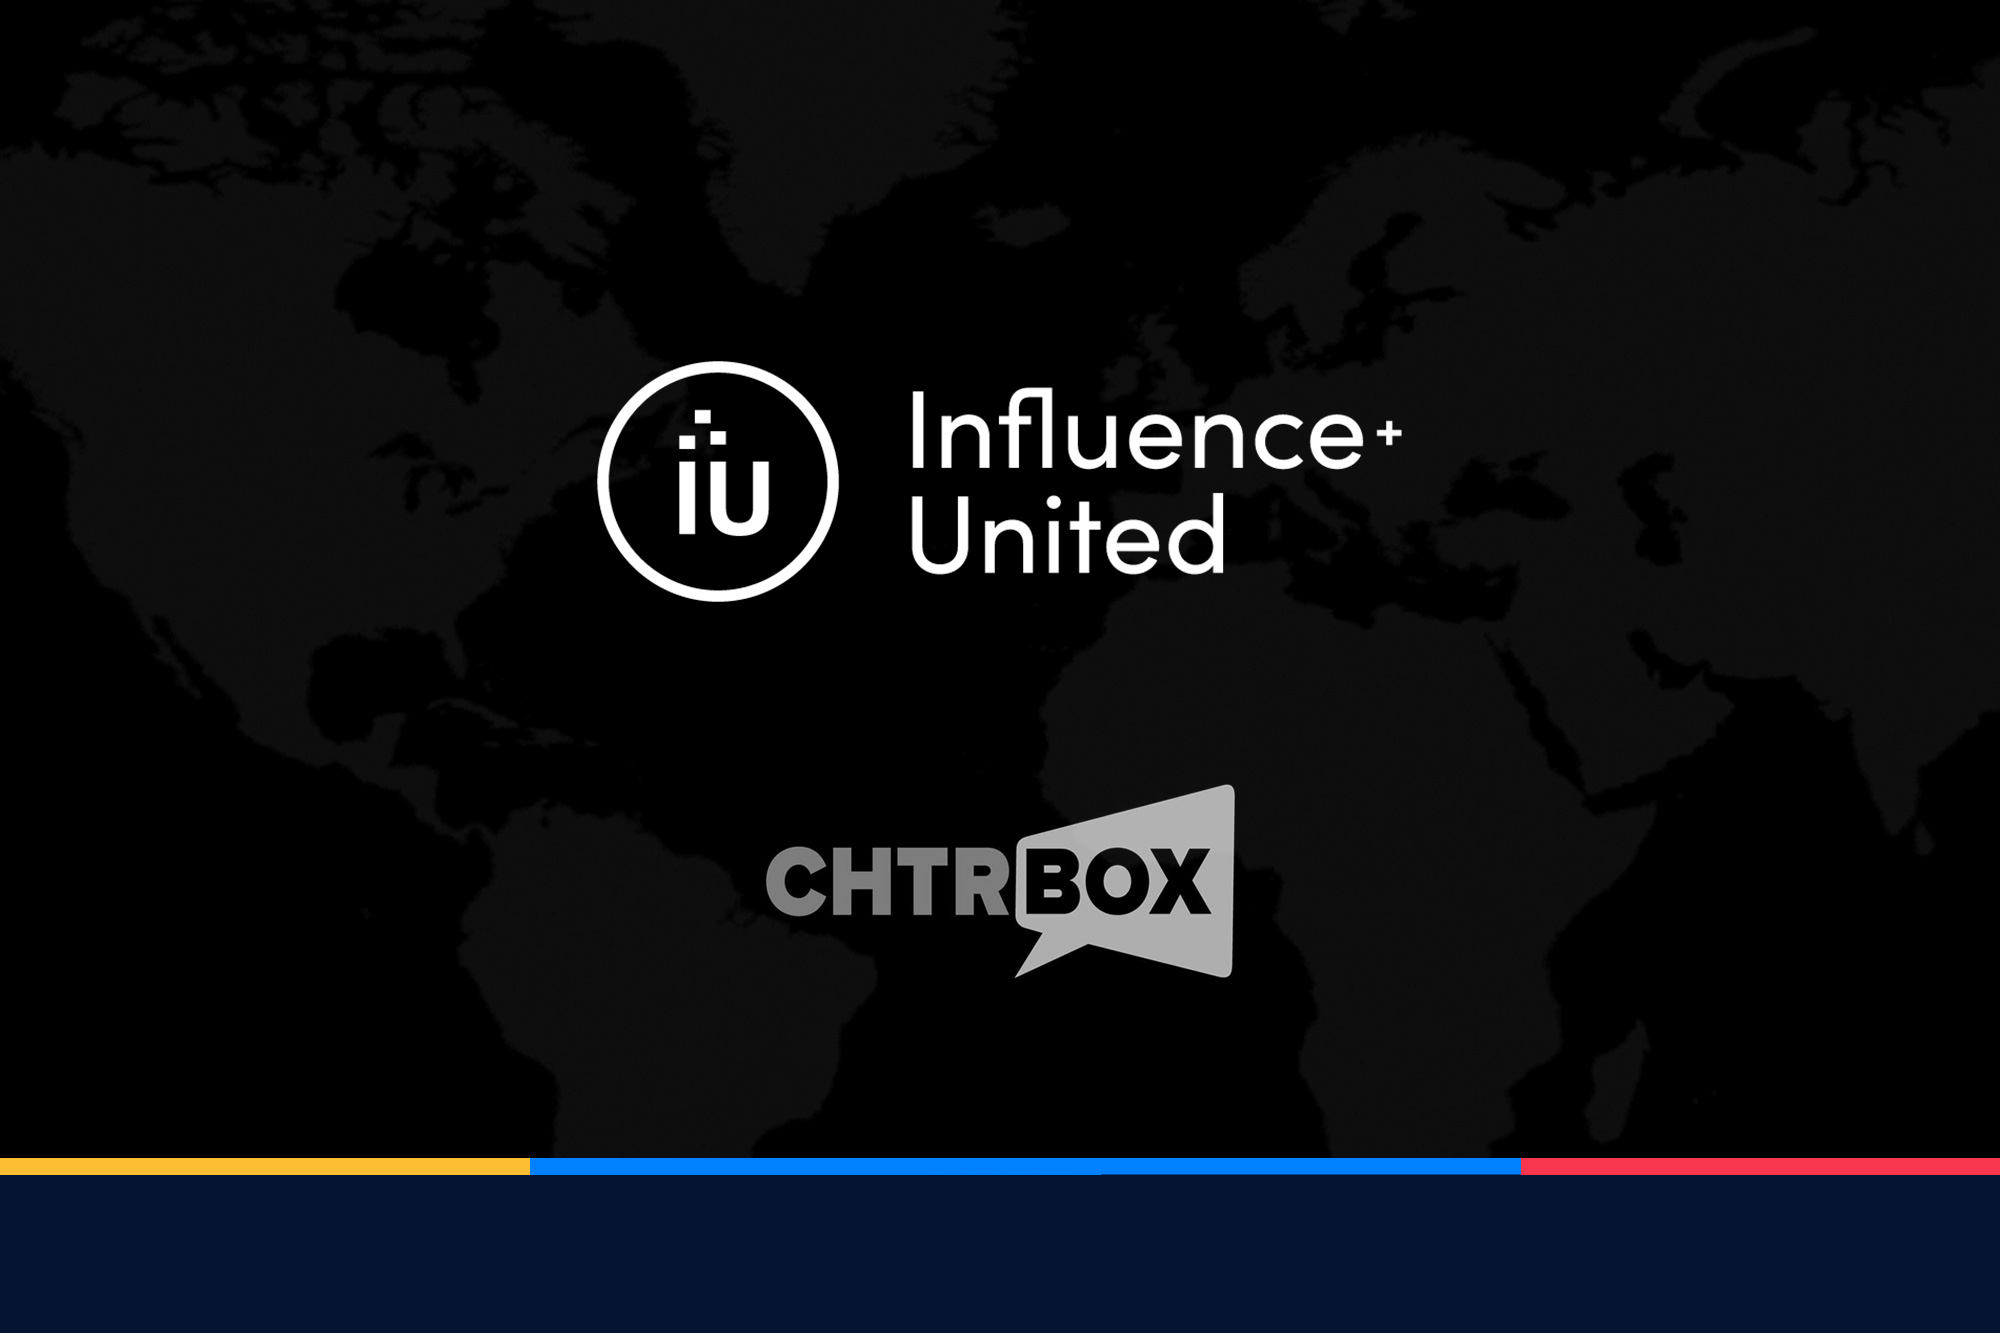 Influence+United Welcomes Chtrbox